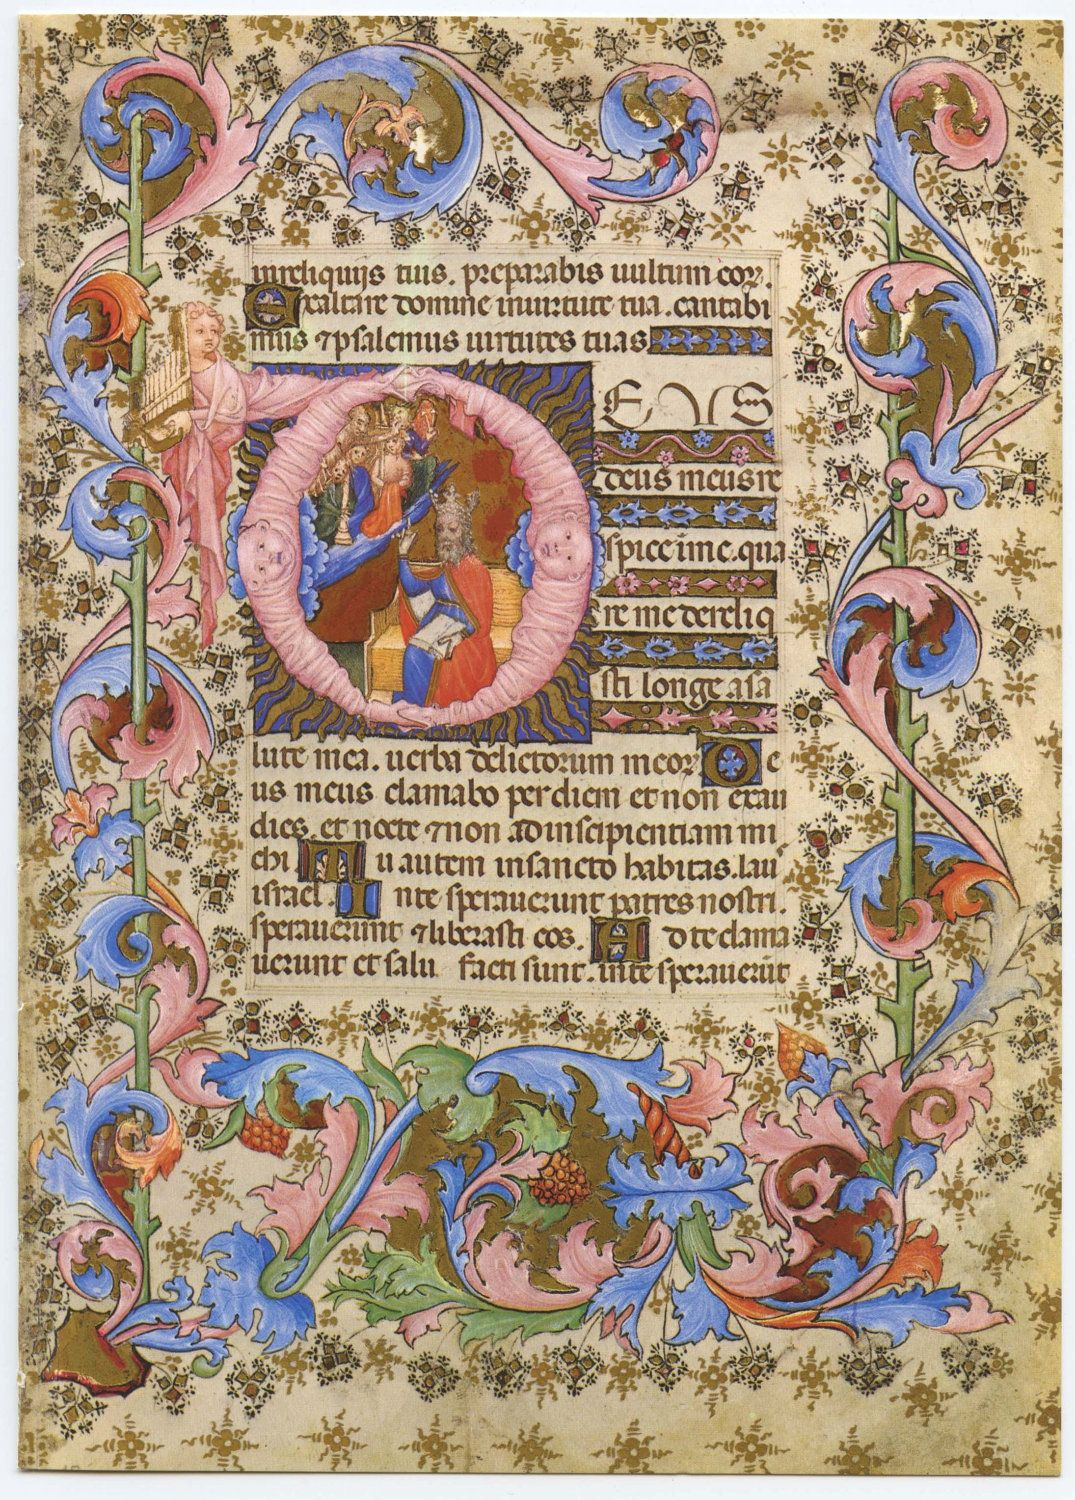 The book of ornamental alphabets, ancient and mediaeval, from the eighth century.